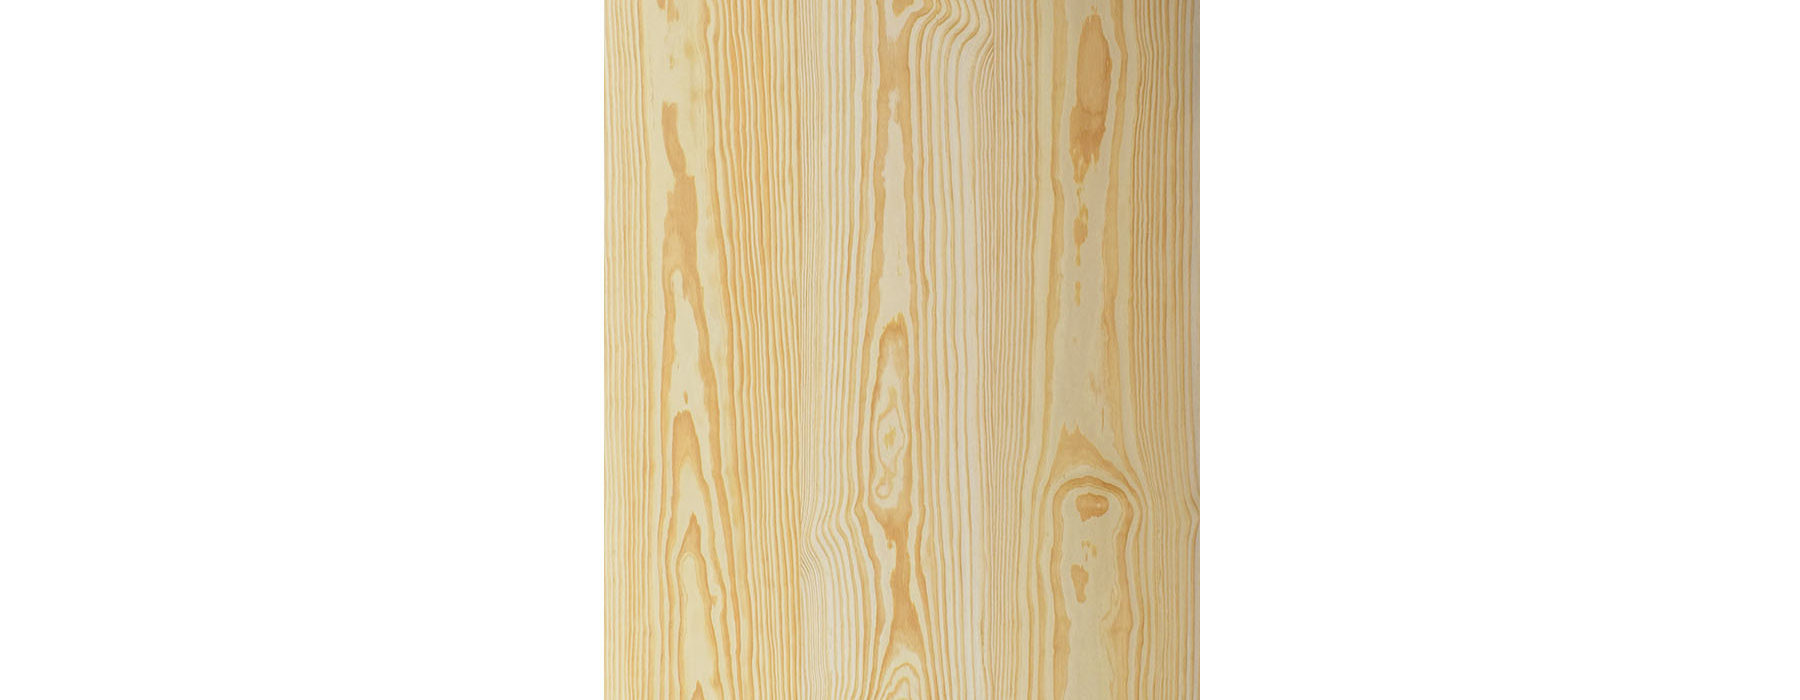 BIG YELLOW PINE 300